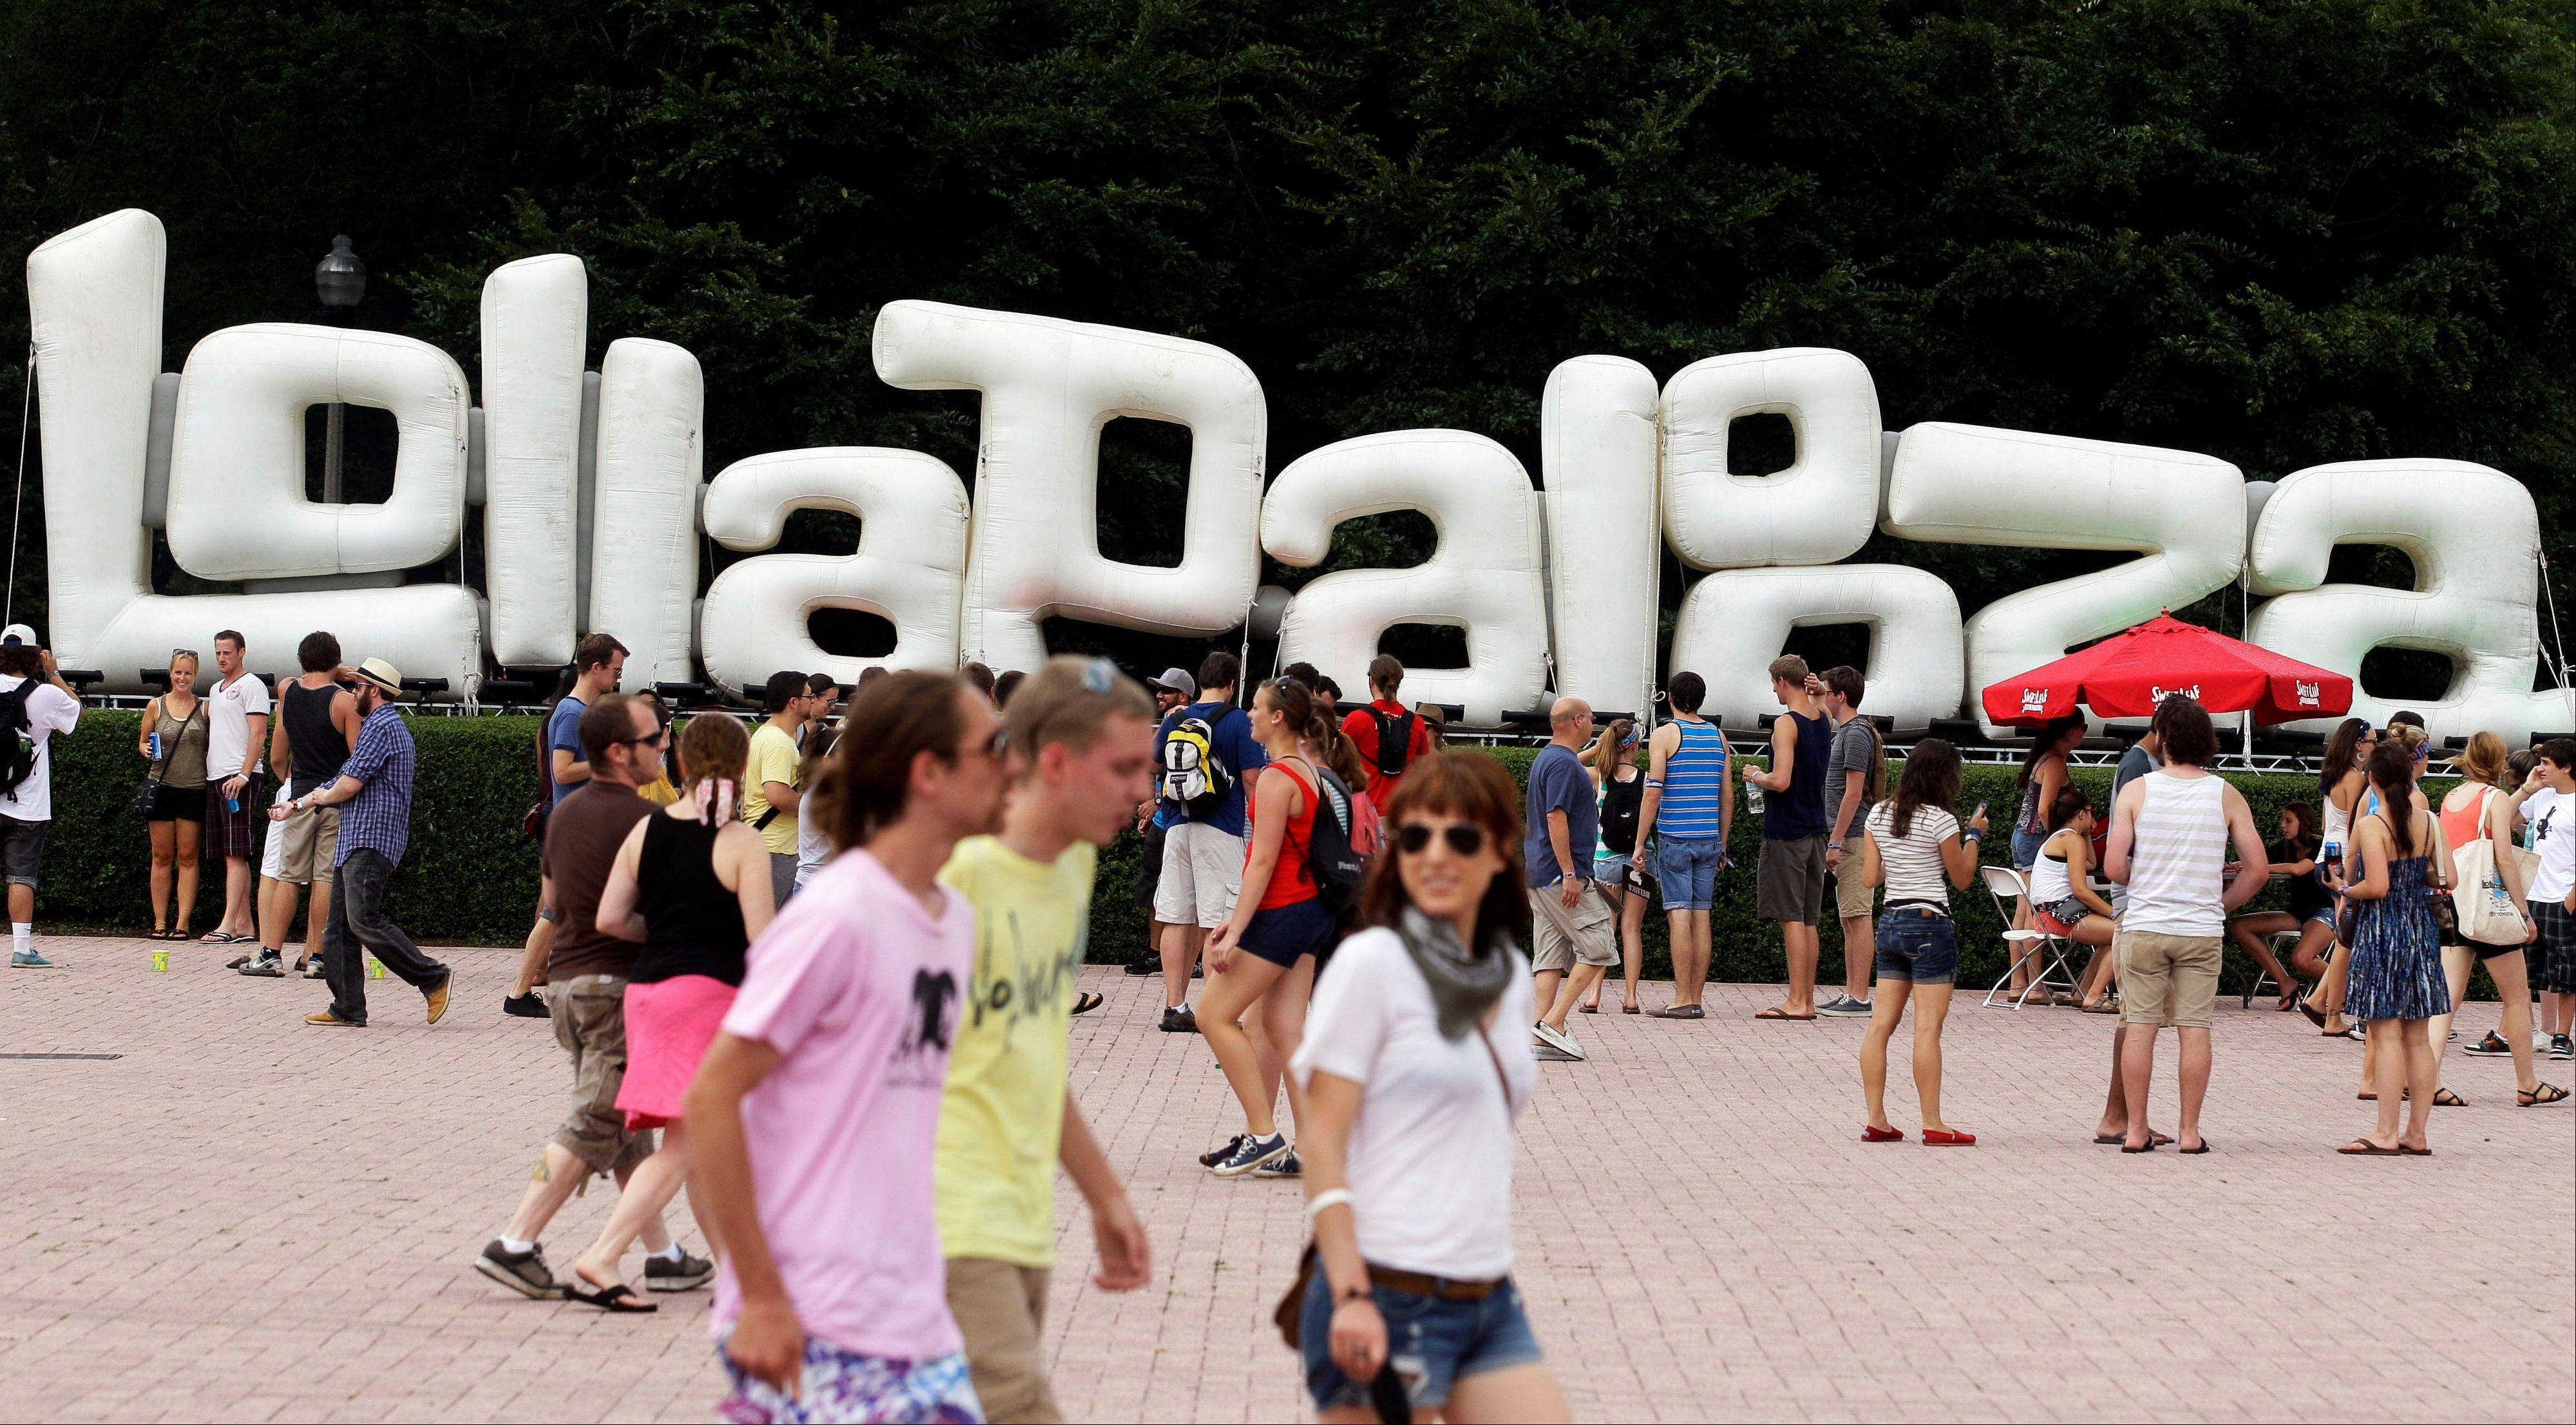 Music fans attend the Lollapalooza music festival Saturday at Grant Park in Chicago. Portugal. The Man's van and trailer full of equipment was stolen Sunday after the close of the festival.